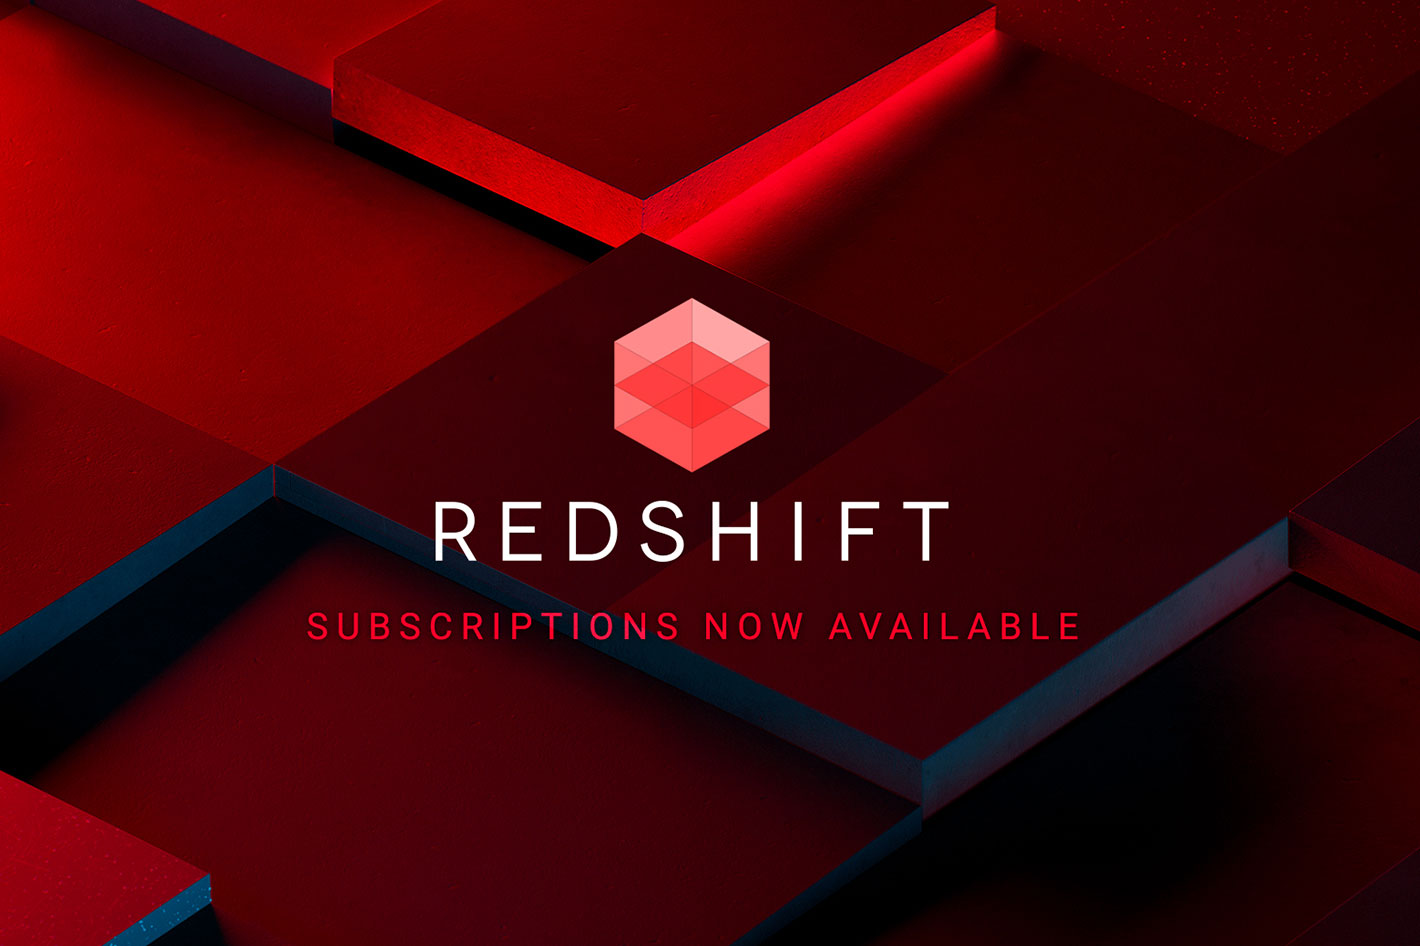 Maxon's Redshift now available as subscription